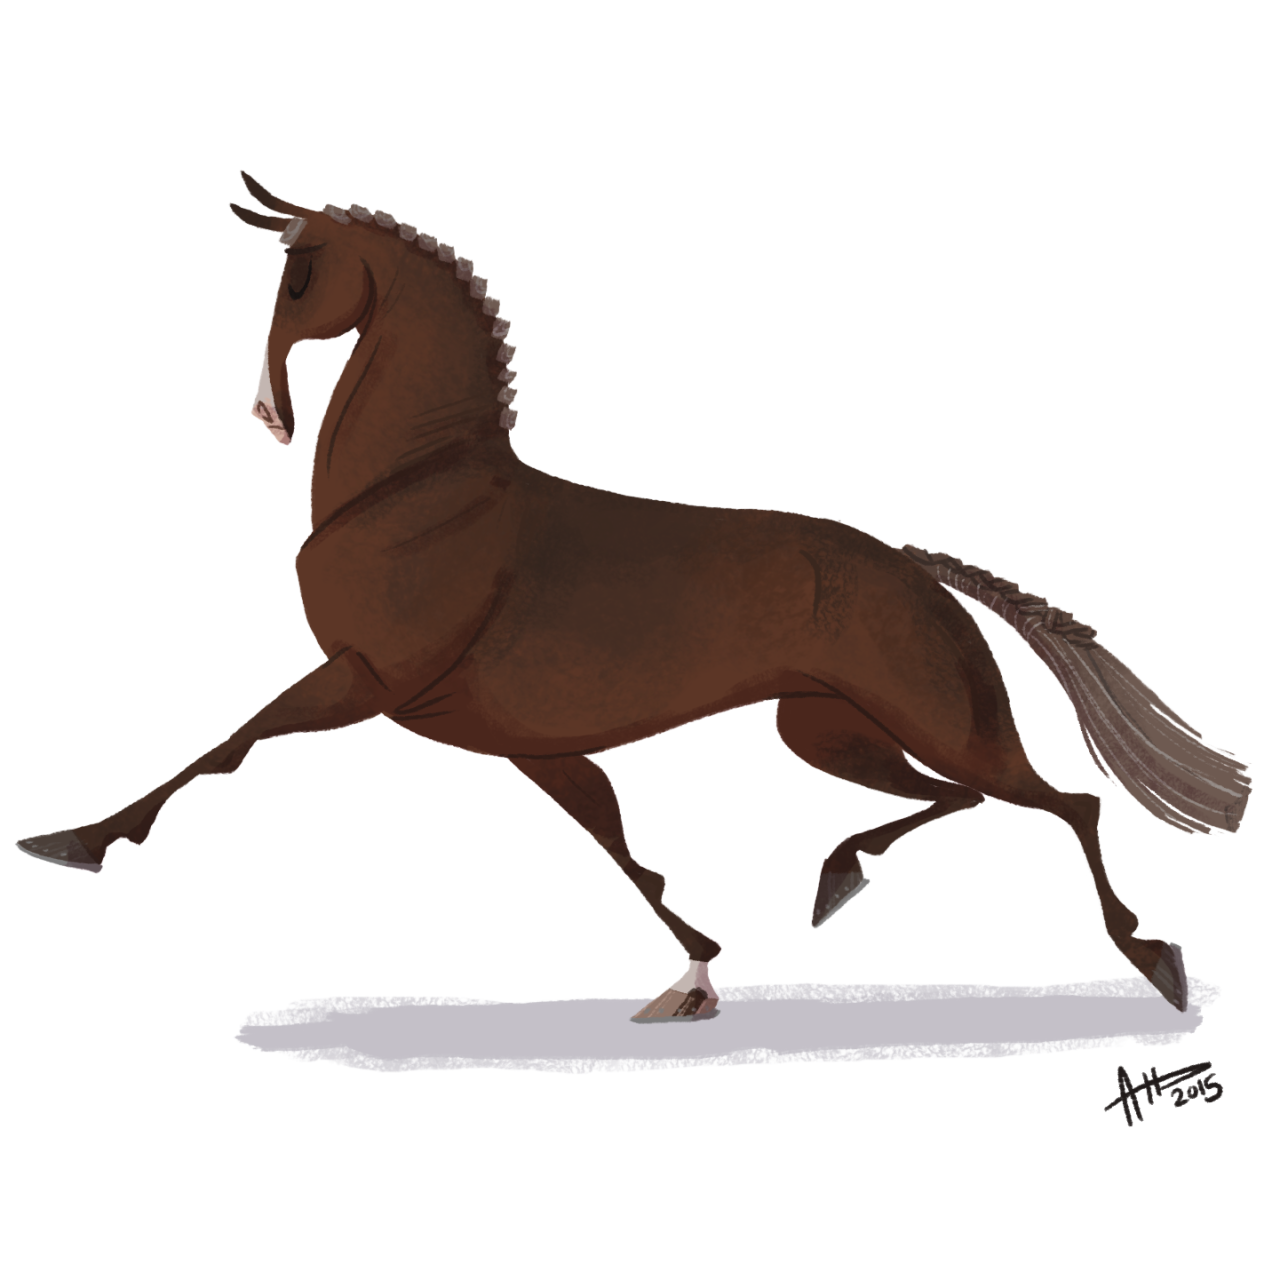 1280x1280 Daily Horse Drawings Dhd Pompous Dressage Horse